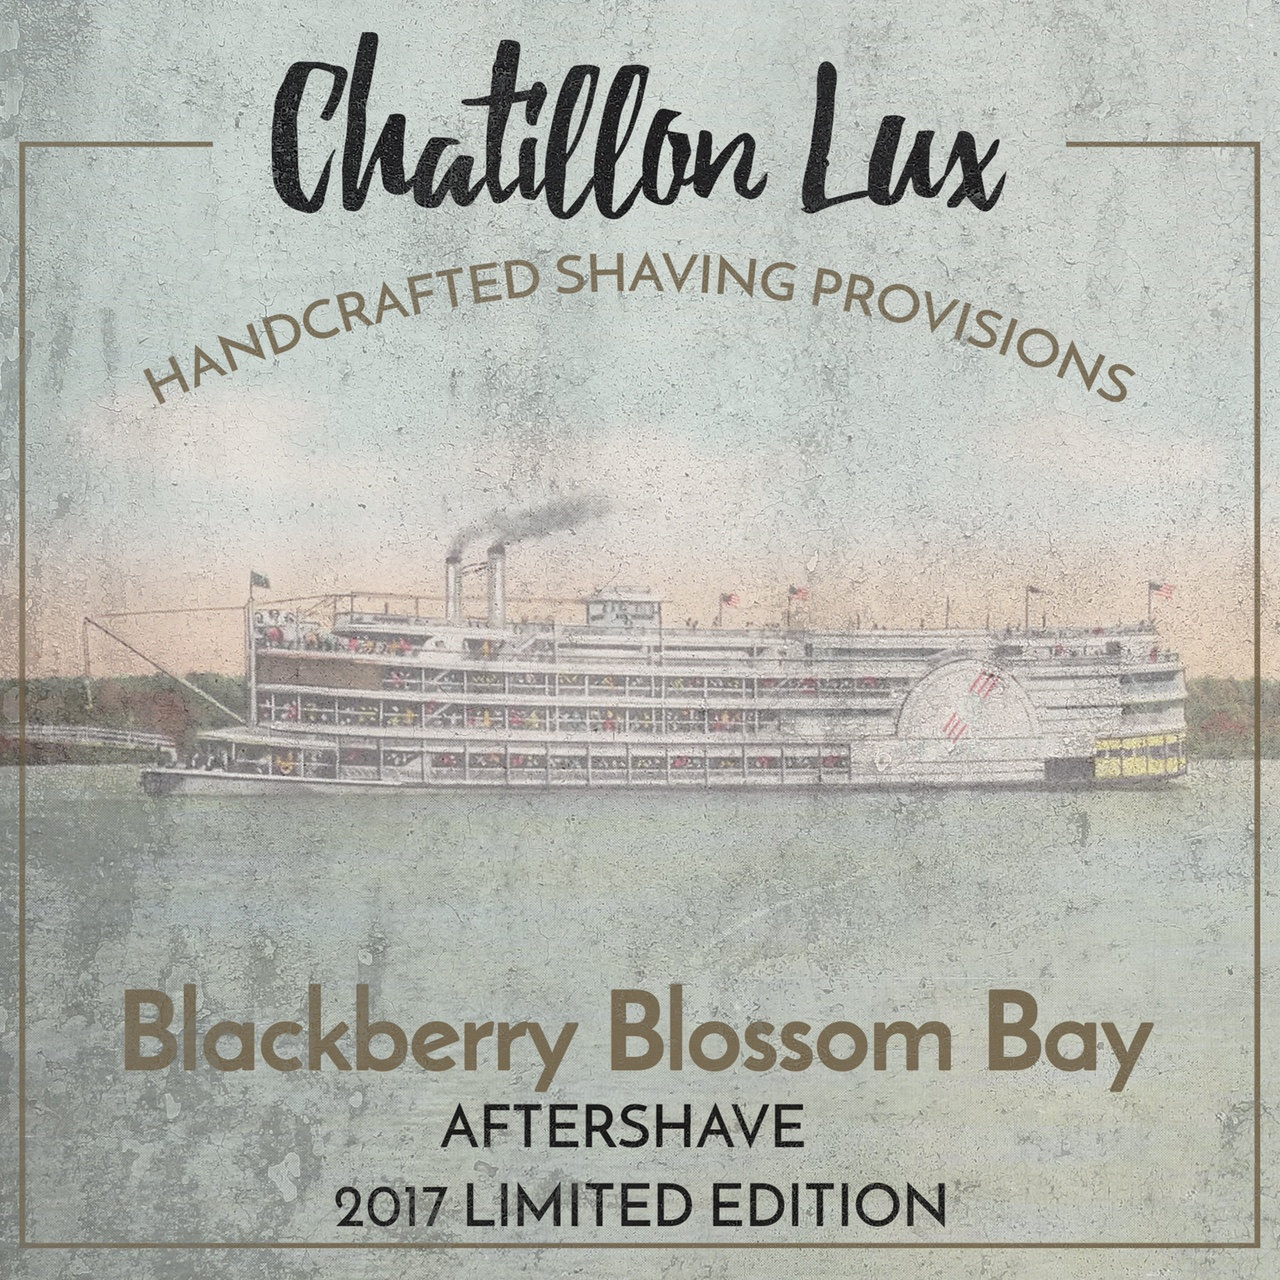 Chatillon Lux - Blackberry Blossom Bay - Aftershave image